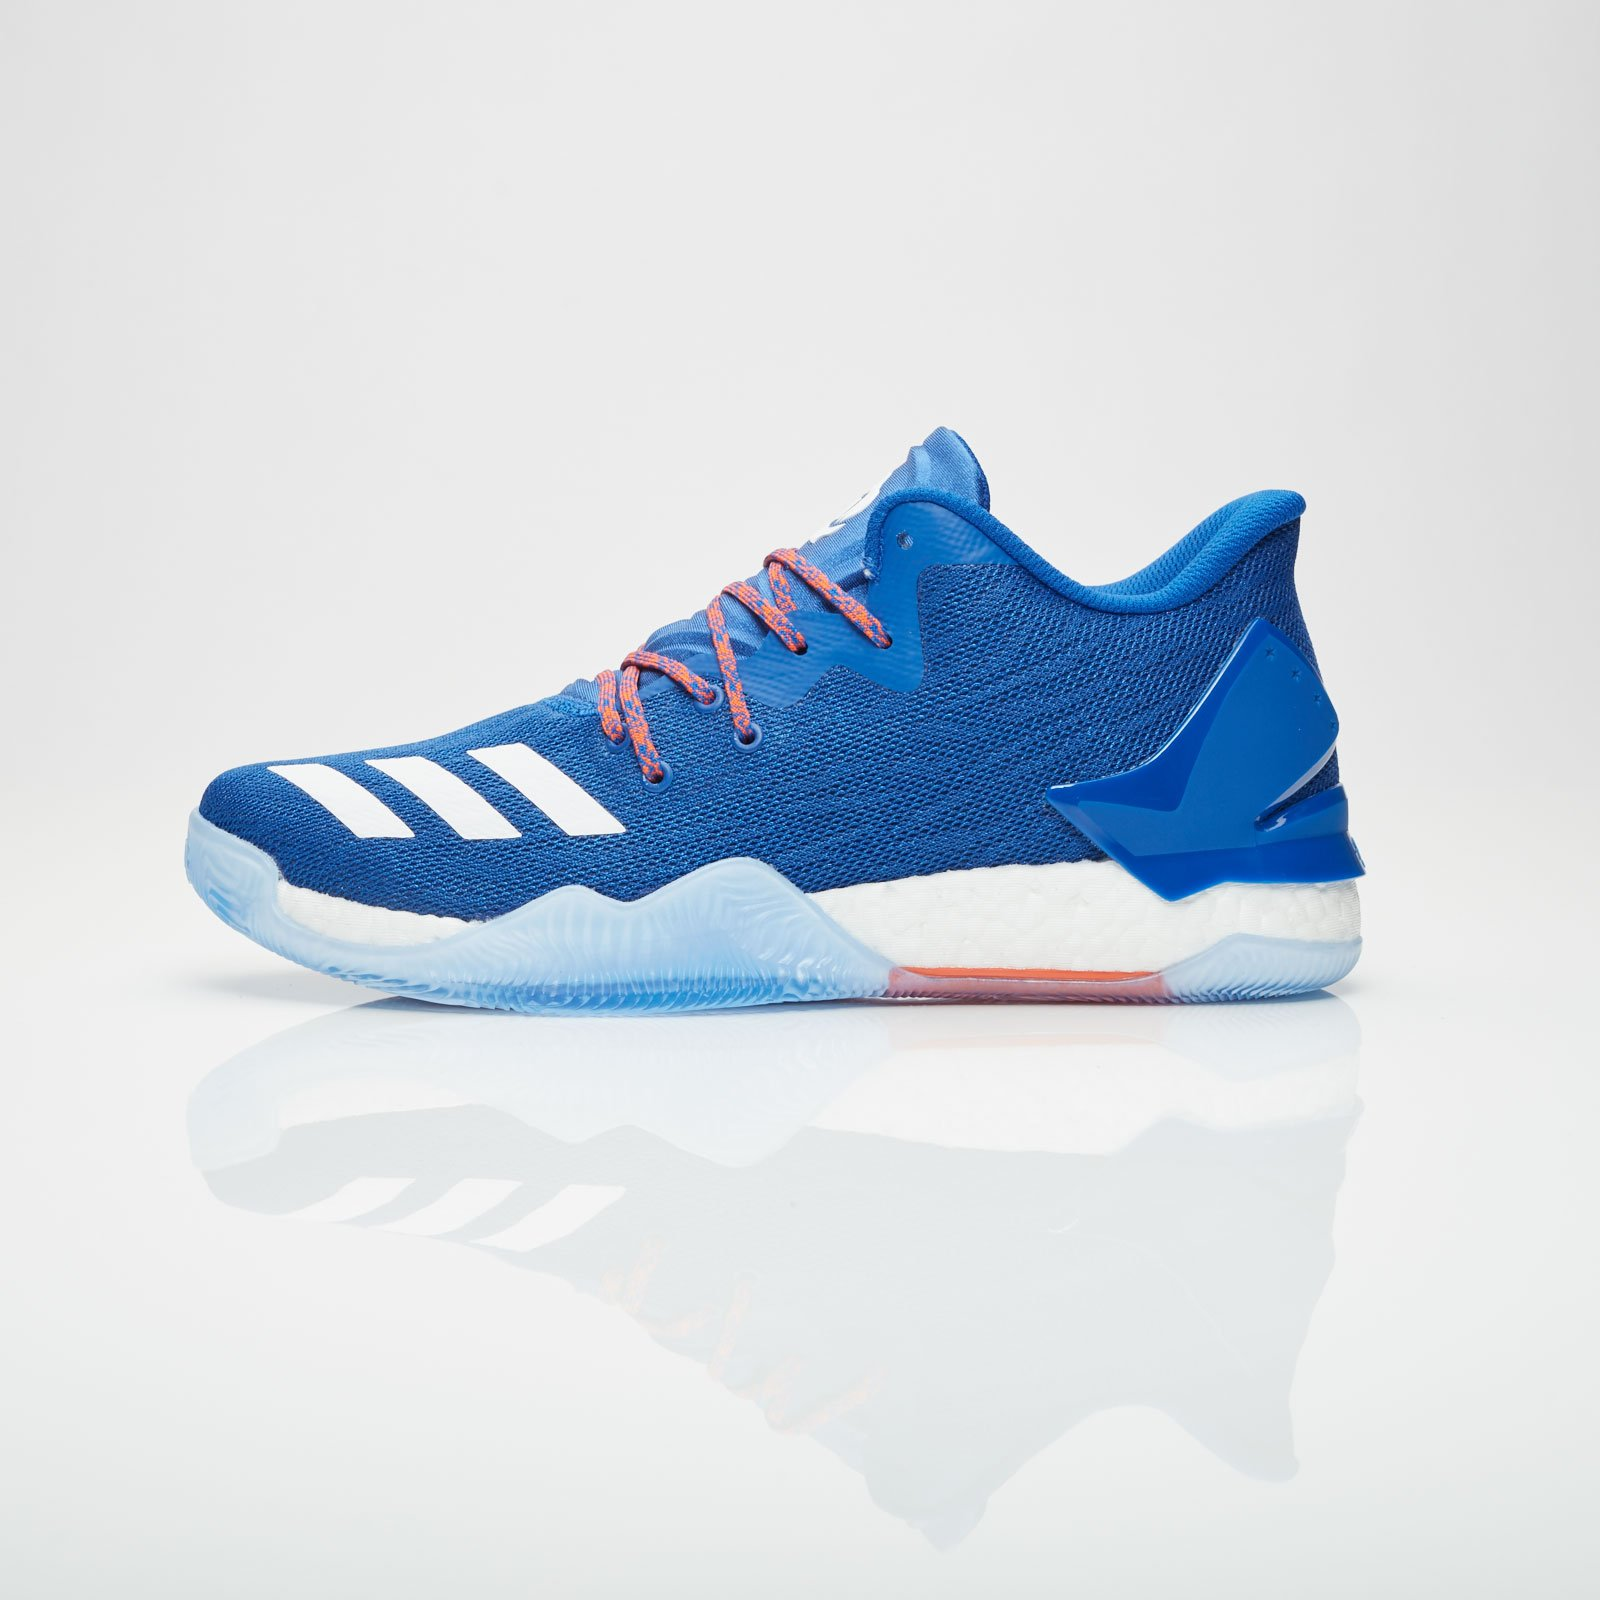 c95f1c5eb9dd adidas D Rose 7 Low - By4499 - Sneakersnstuff